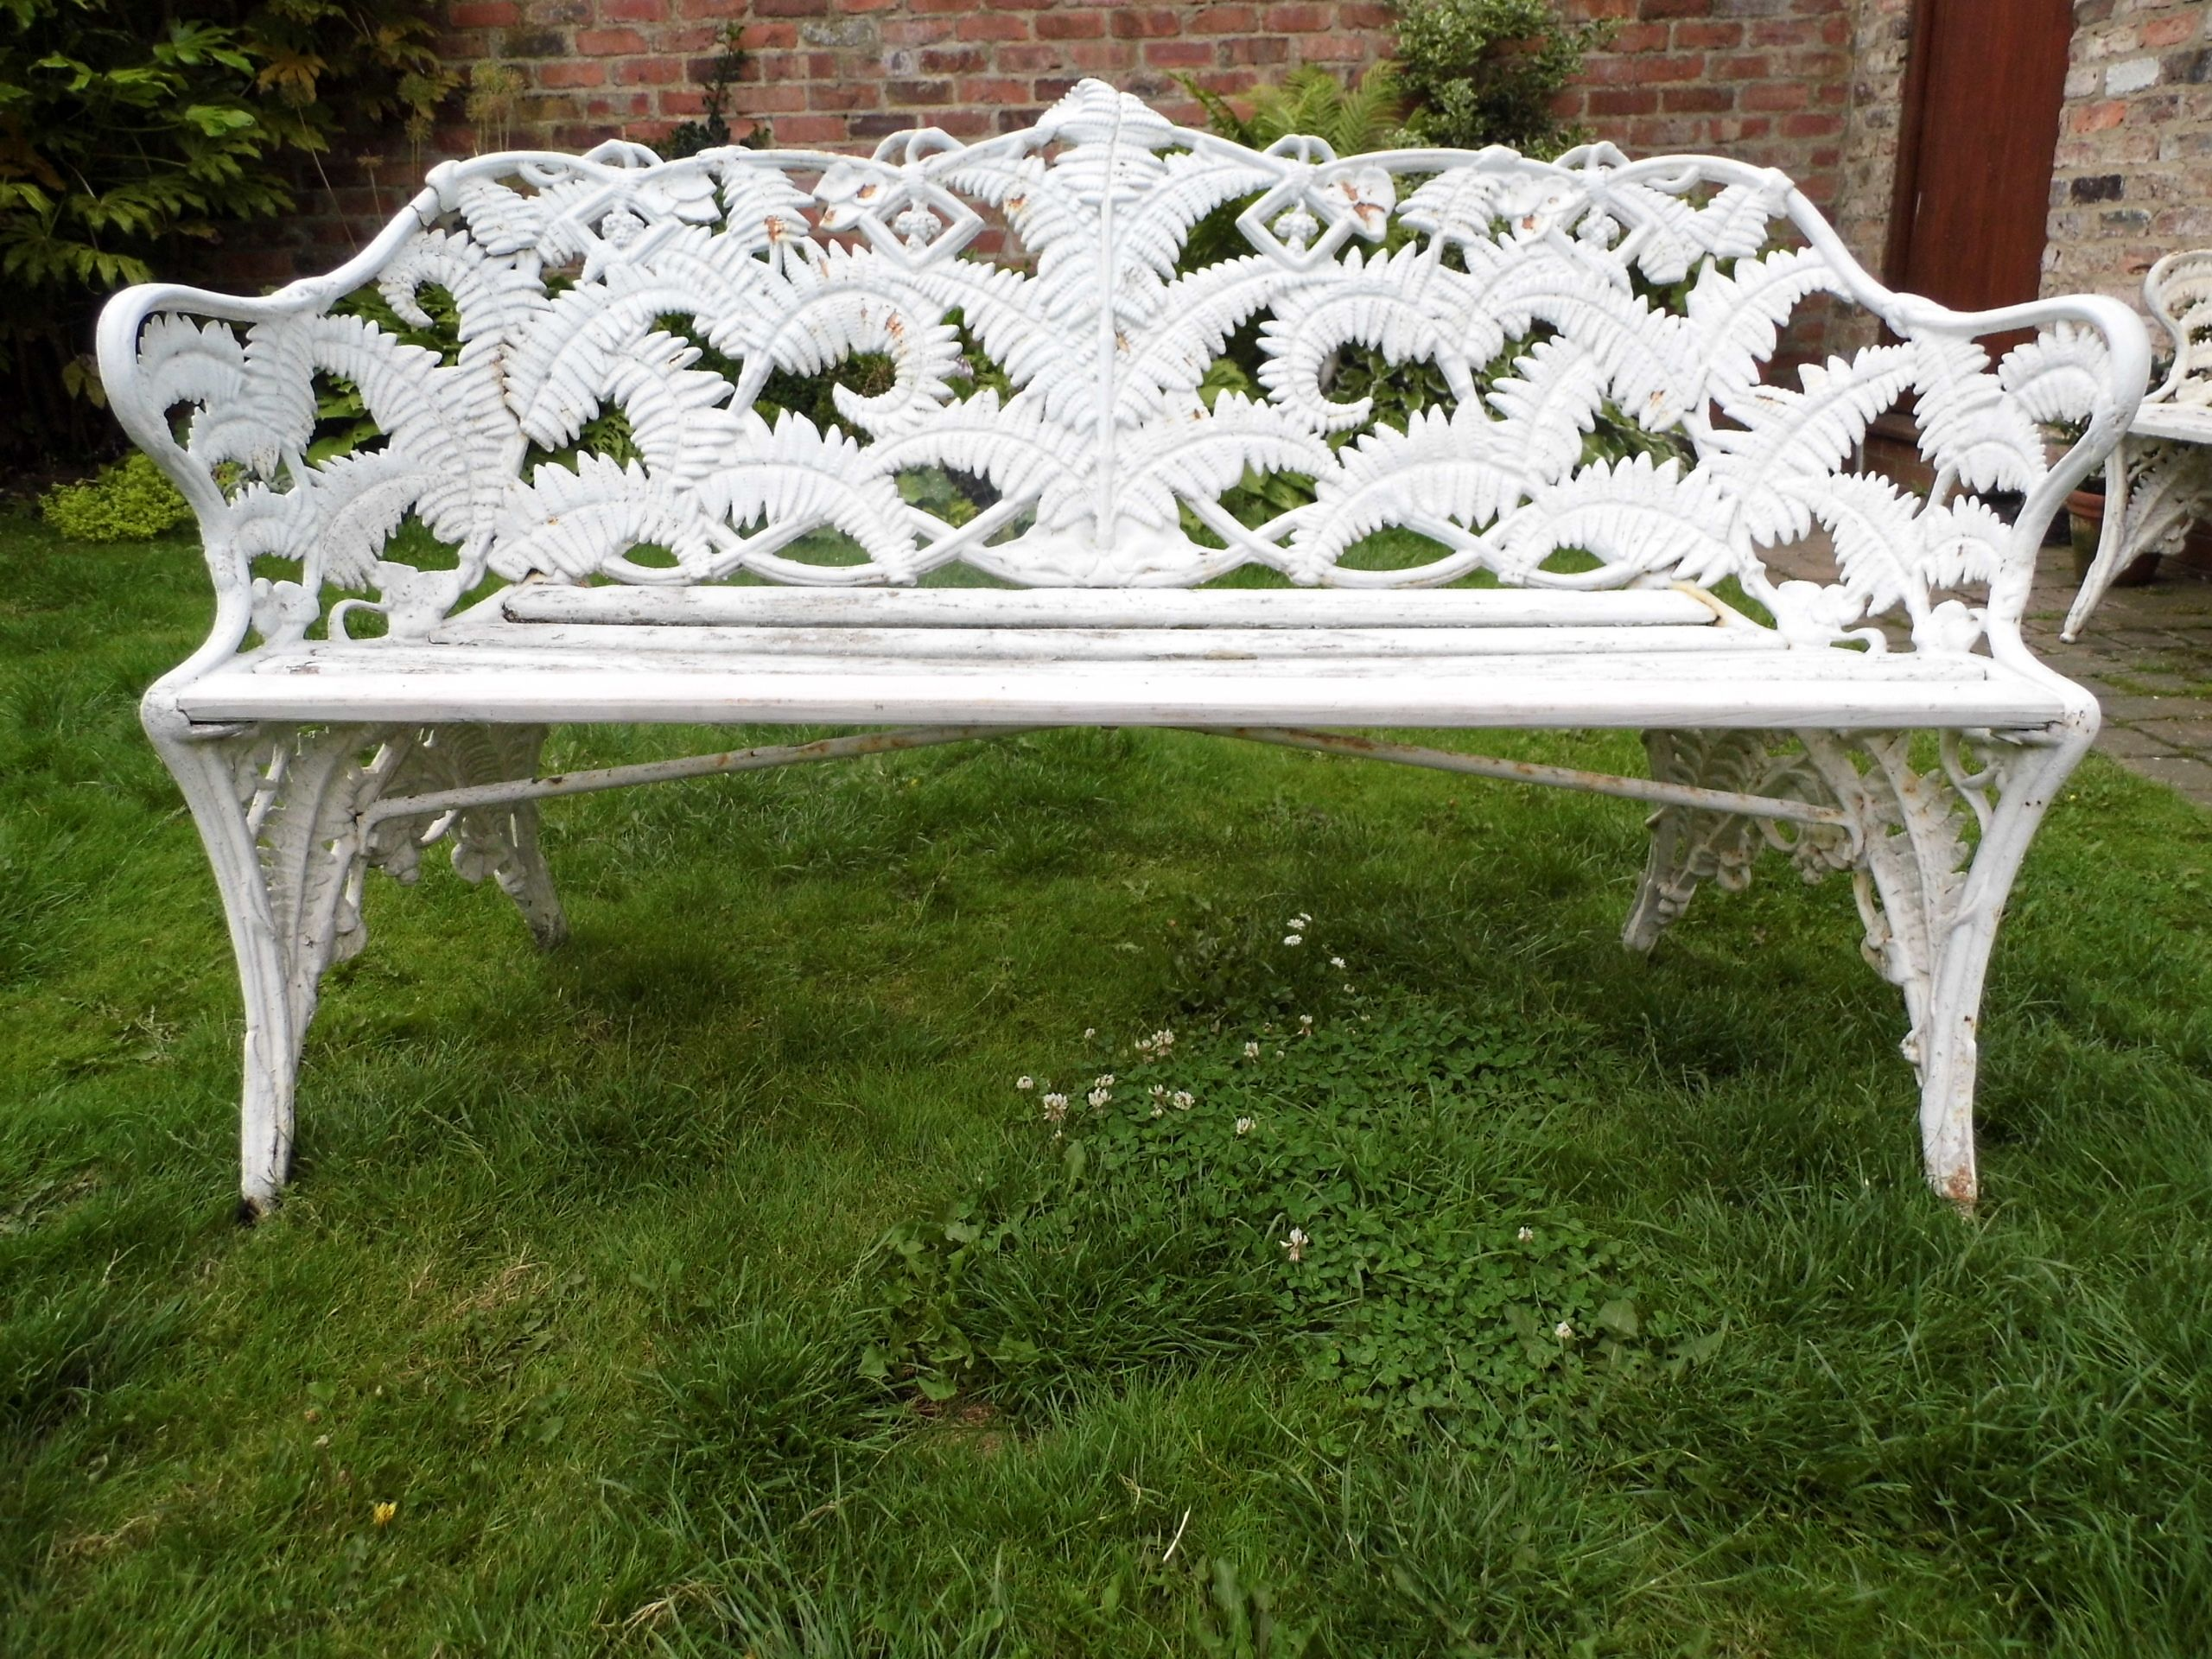 Coalbrookdale Fern And Blackberry Cast Iron Bench.